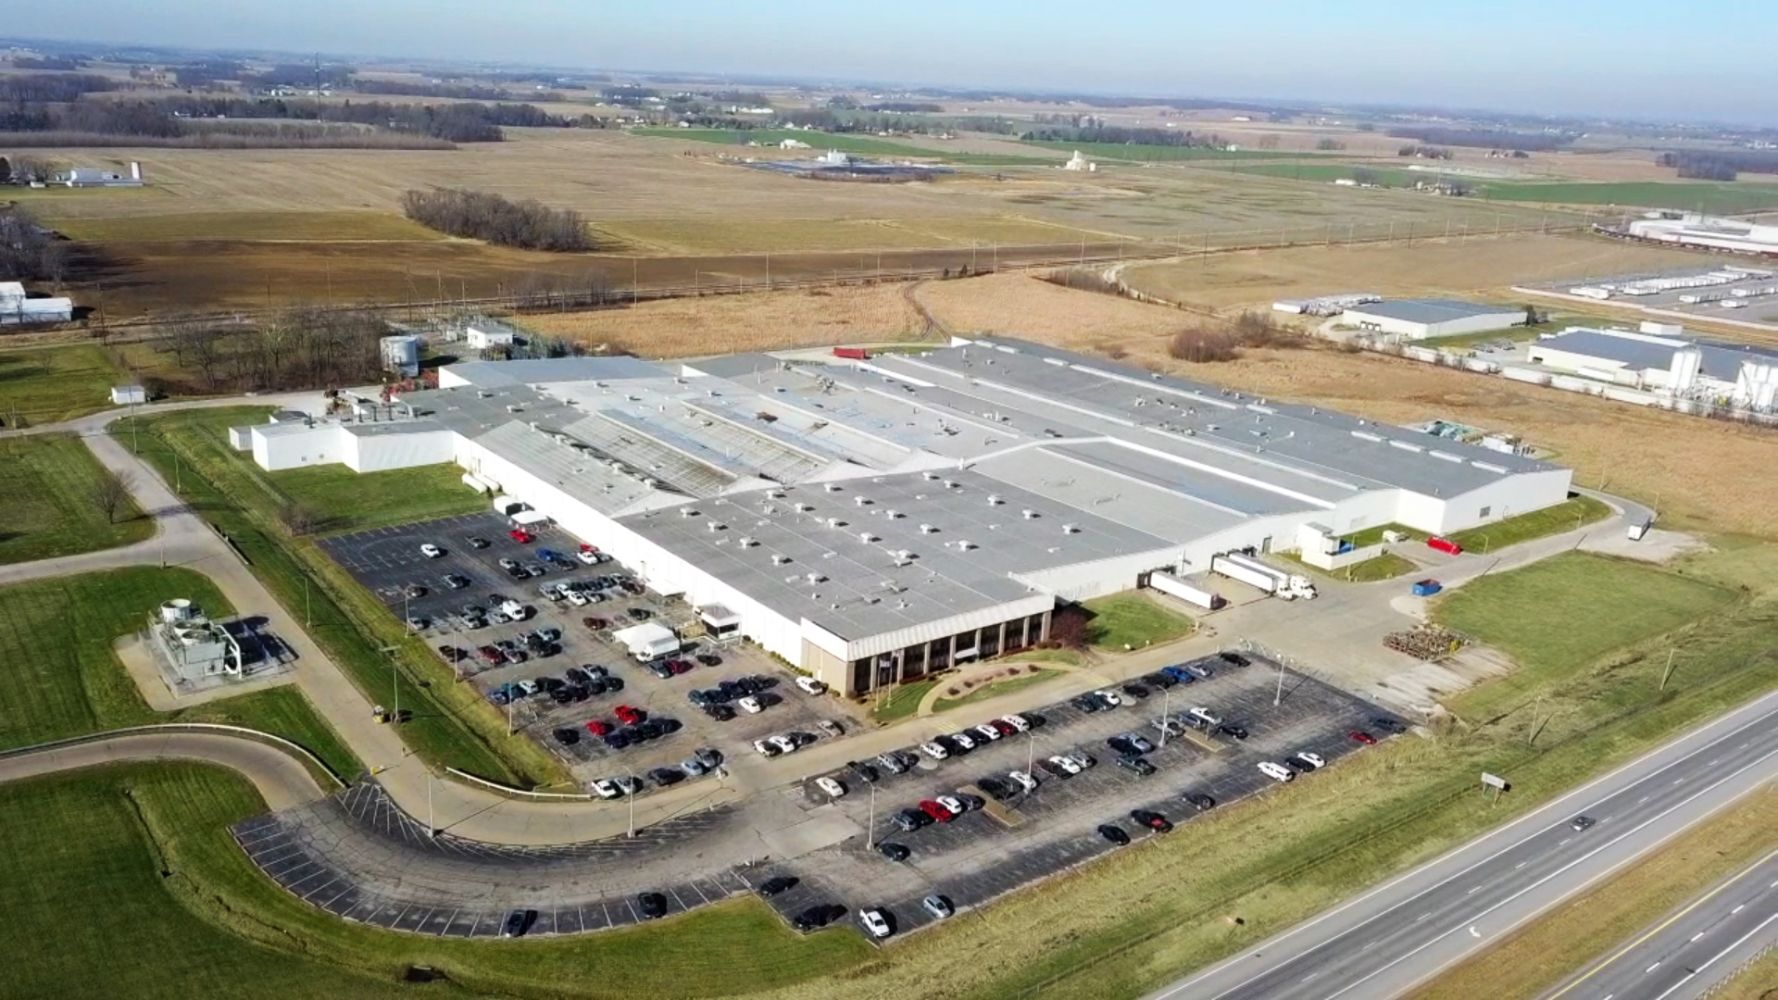 Day 1 - 660k Sq Ft Manufacturing Facility 700+ Lots - Fanuc Robots, Bystronic Grinders, Billco Washers, Allen-Bradley and Toshiba Components